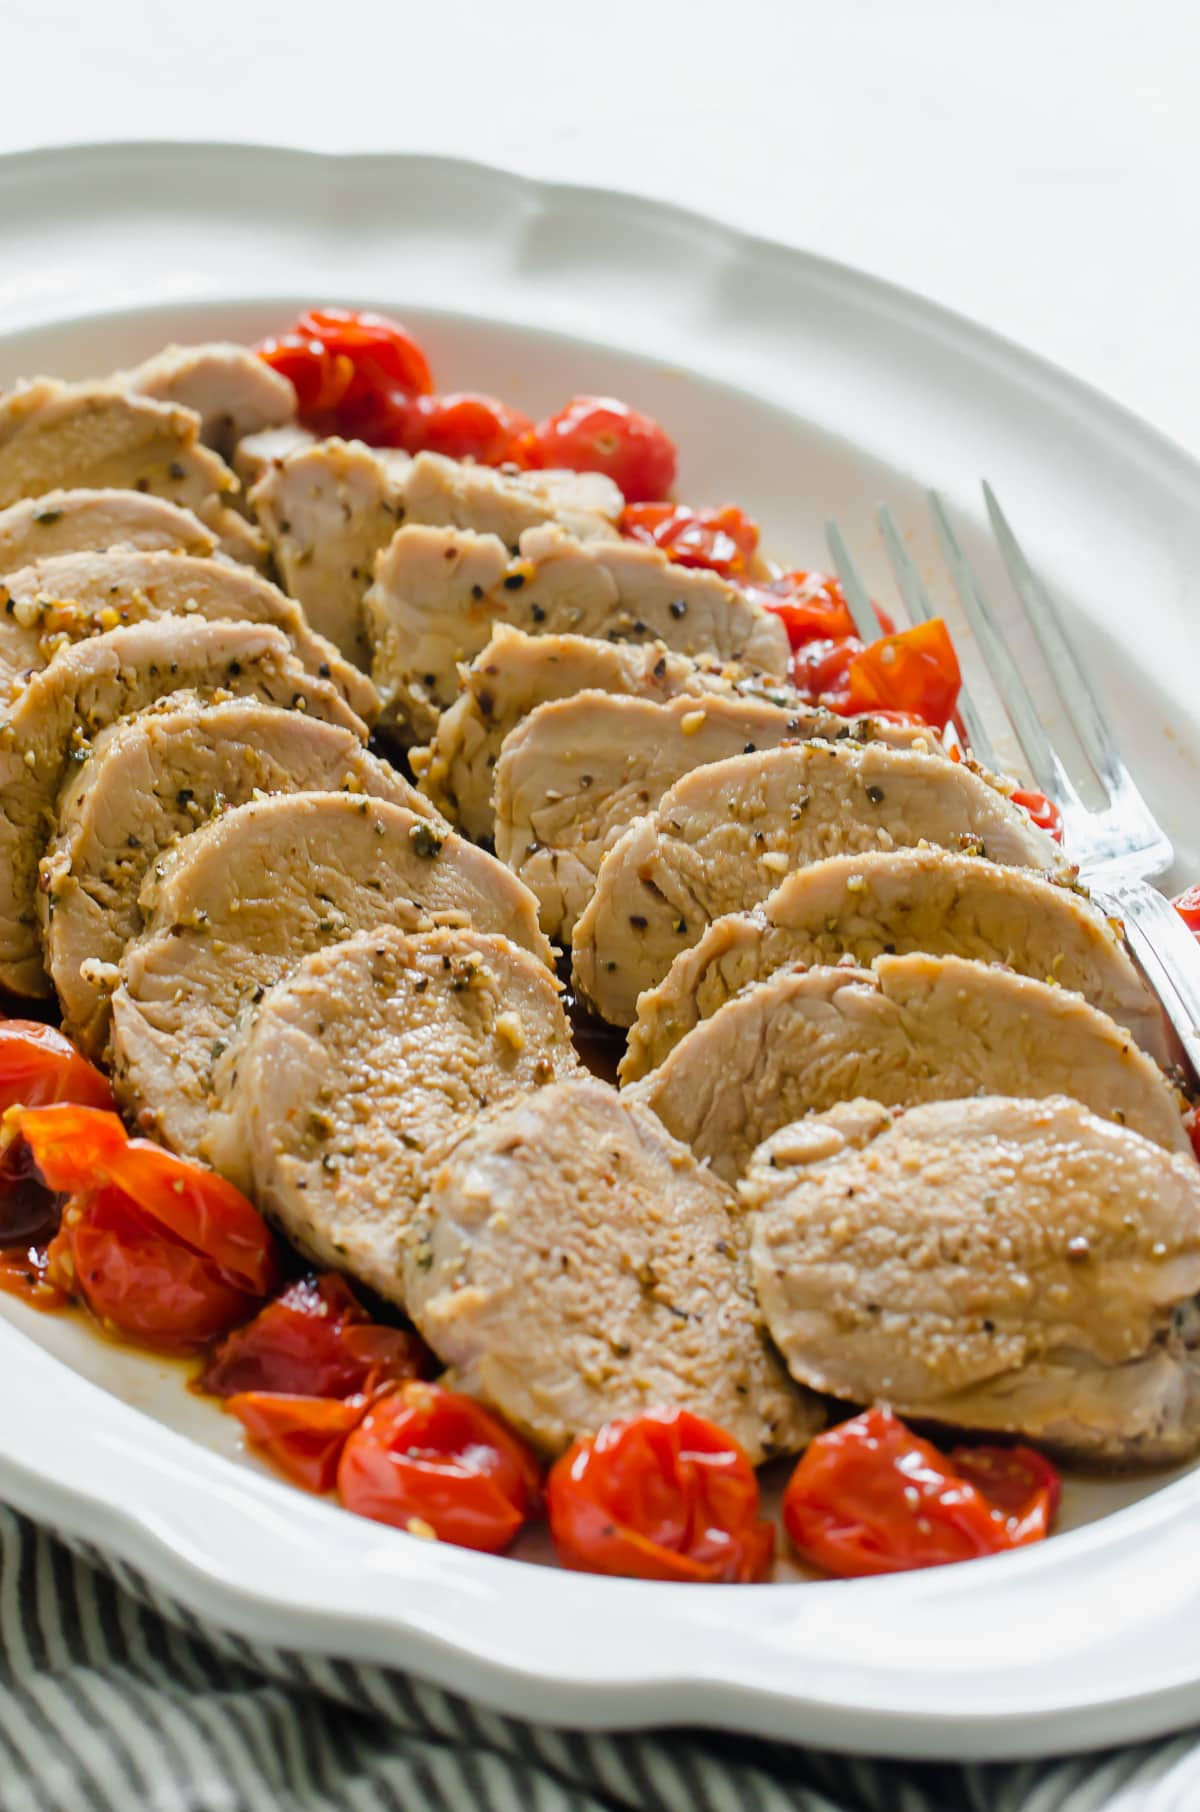 A close up shot of sliced pork with roasted tomatoes.